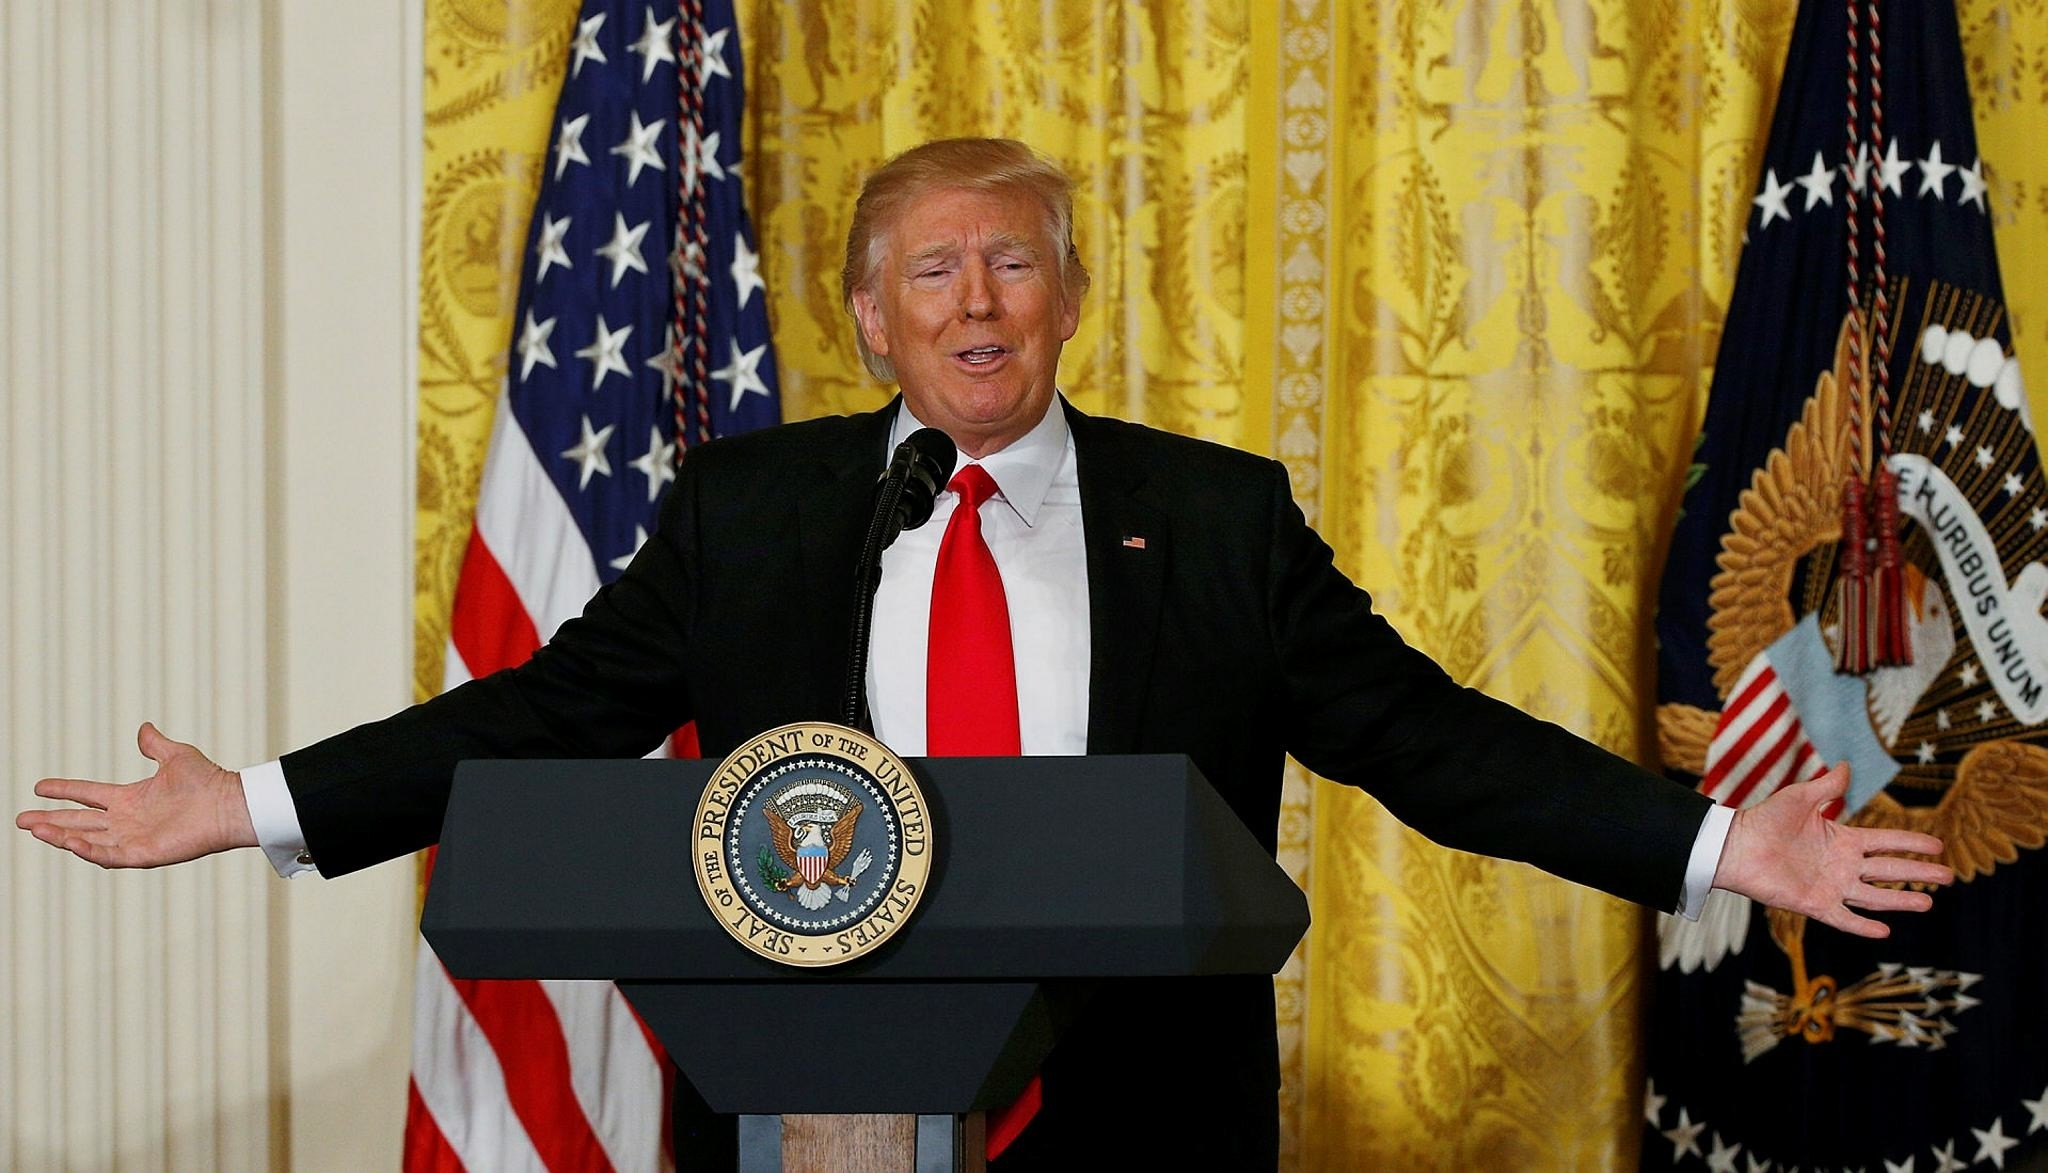 U.S. President Donald Trump reacts to a question during a news conference at the White House in Washington, D.C., Feb. 16.